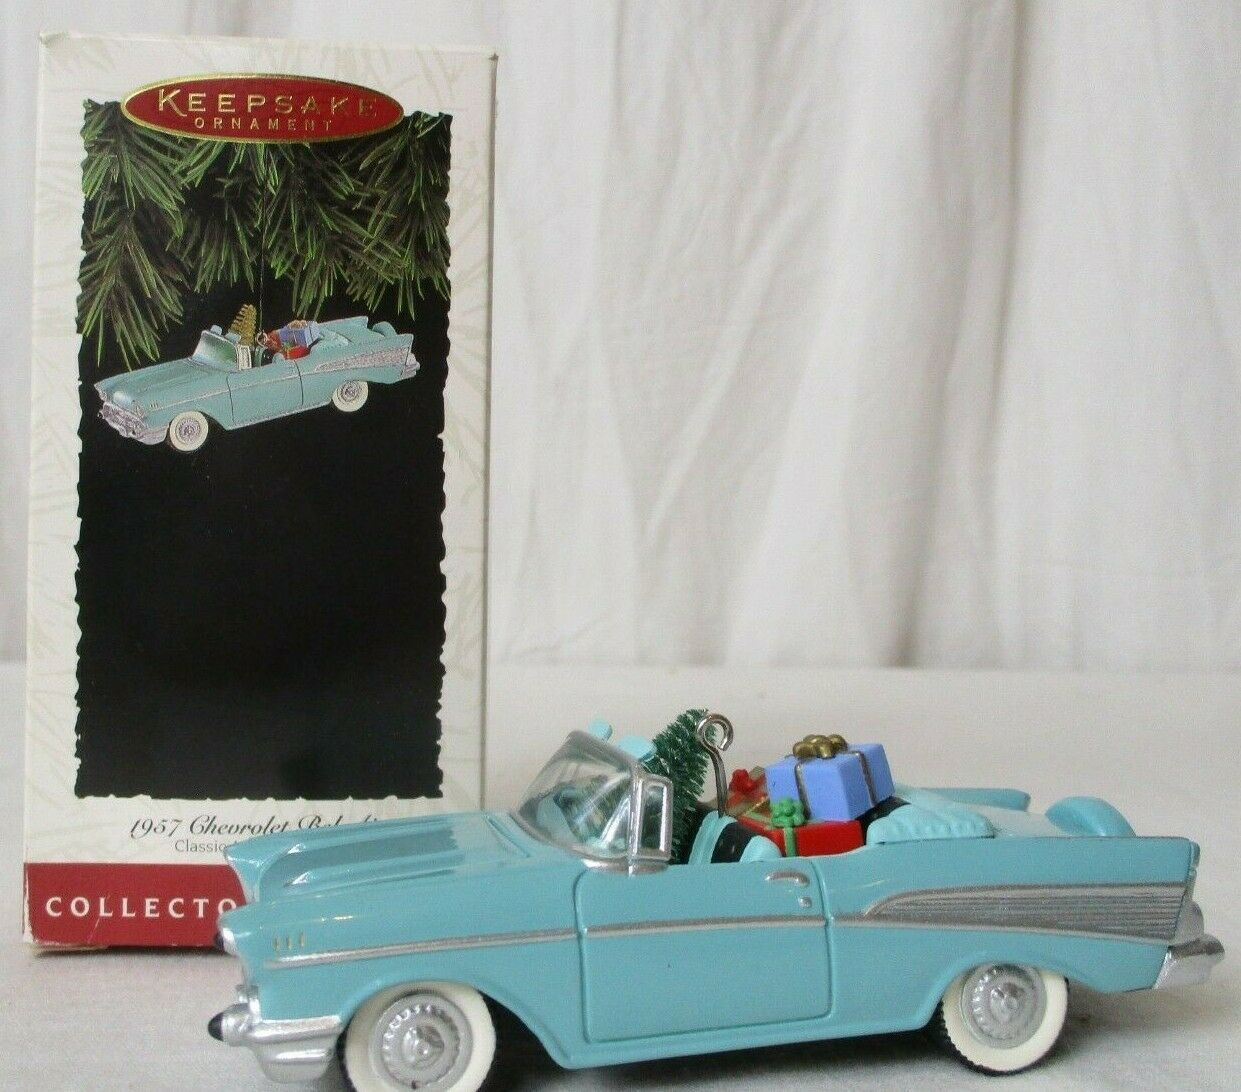 Primary image for HALLMARK 1994 Collector Series Keepsake Ornament 1957 Chevrolet Bel-Air w/Box